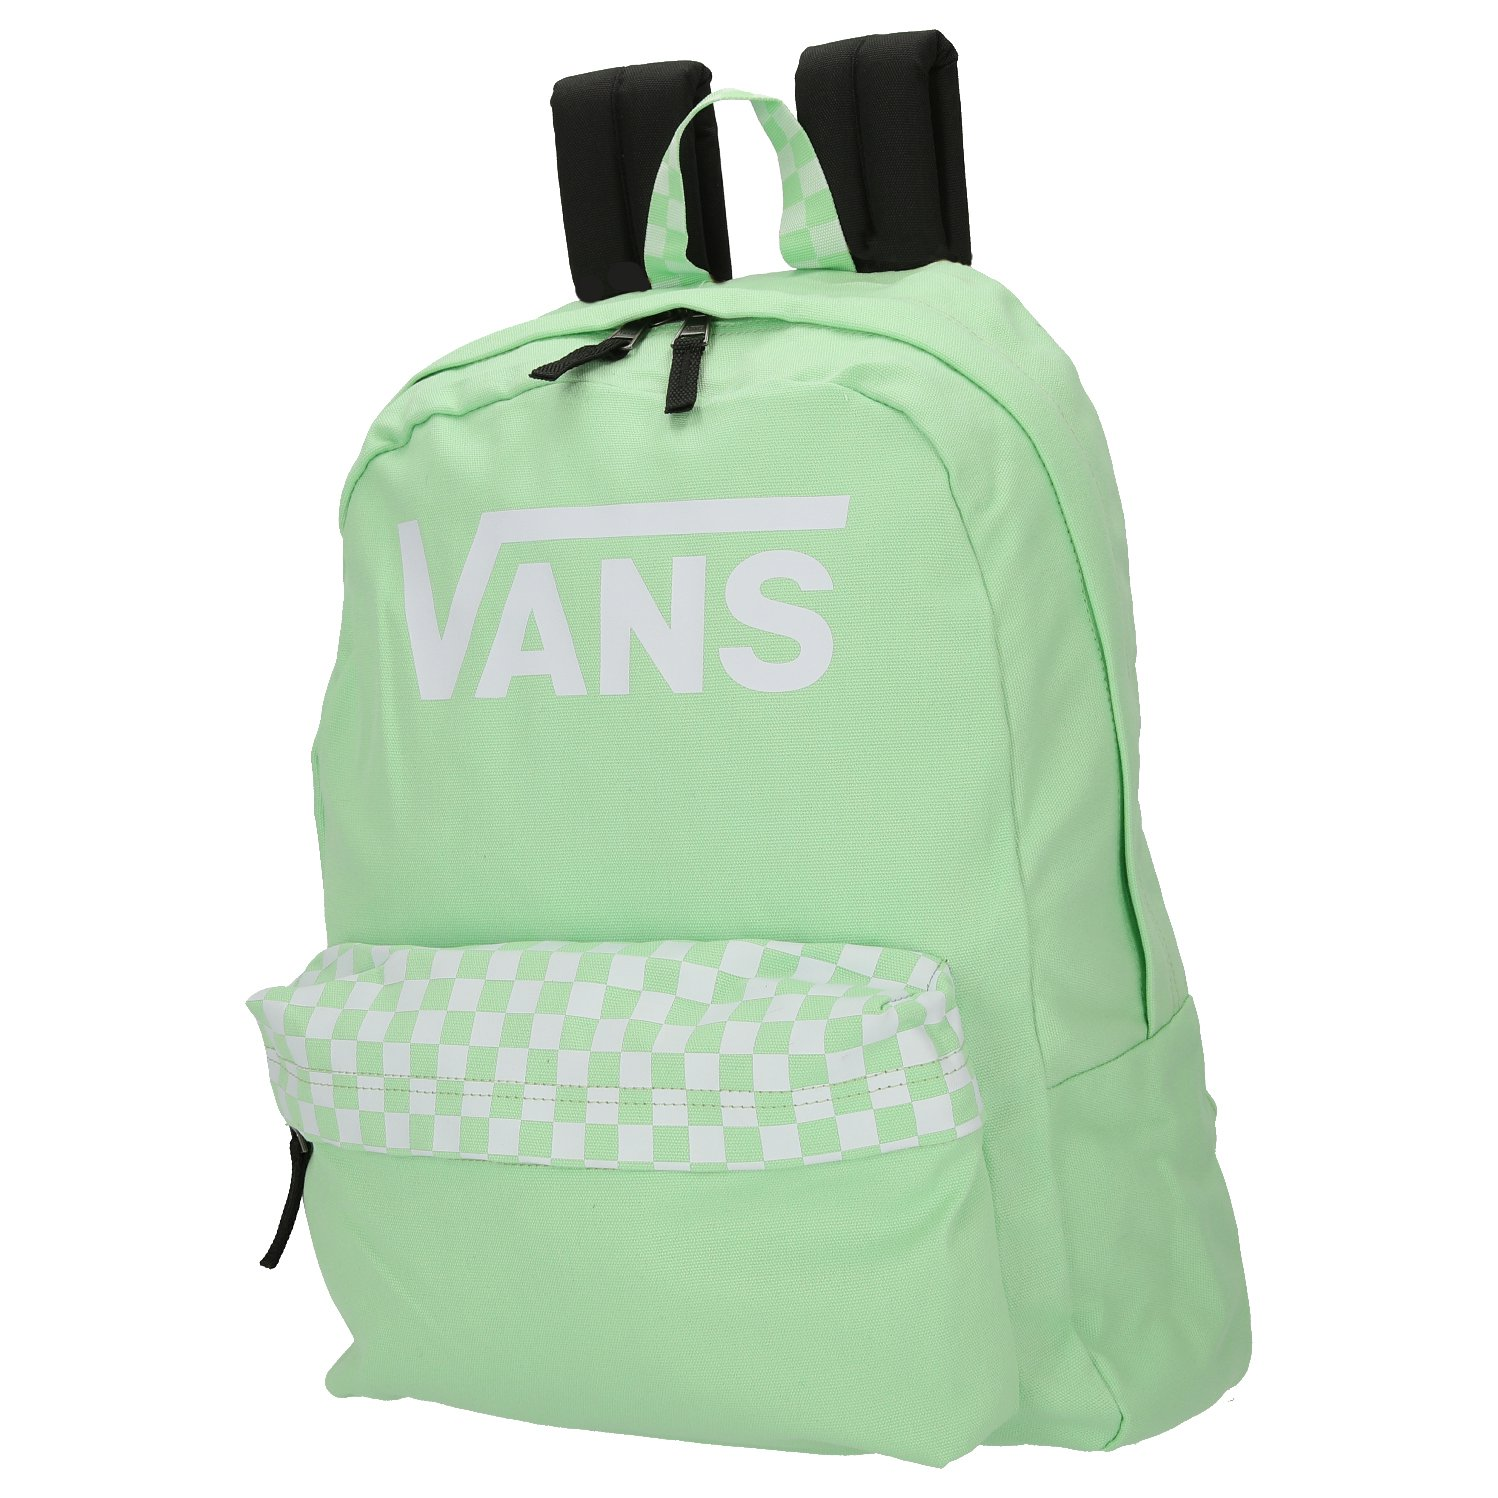 Vans Realm Rucksack Color Theory 43 cm